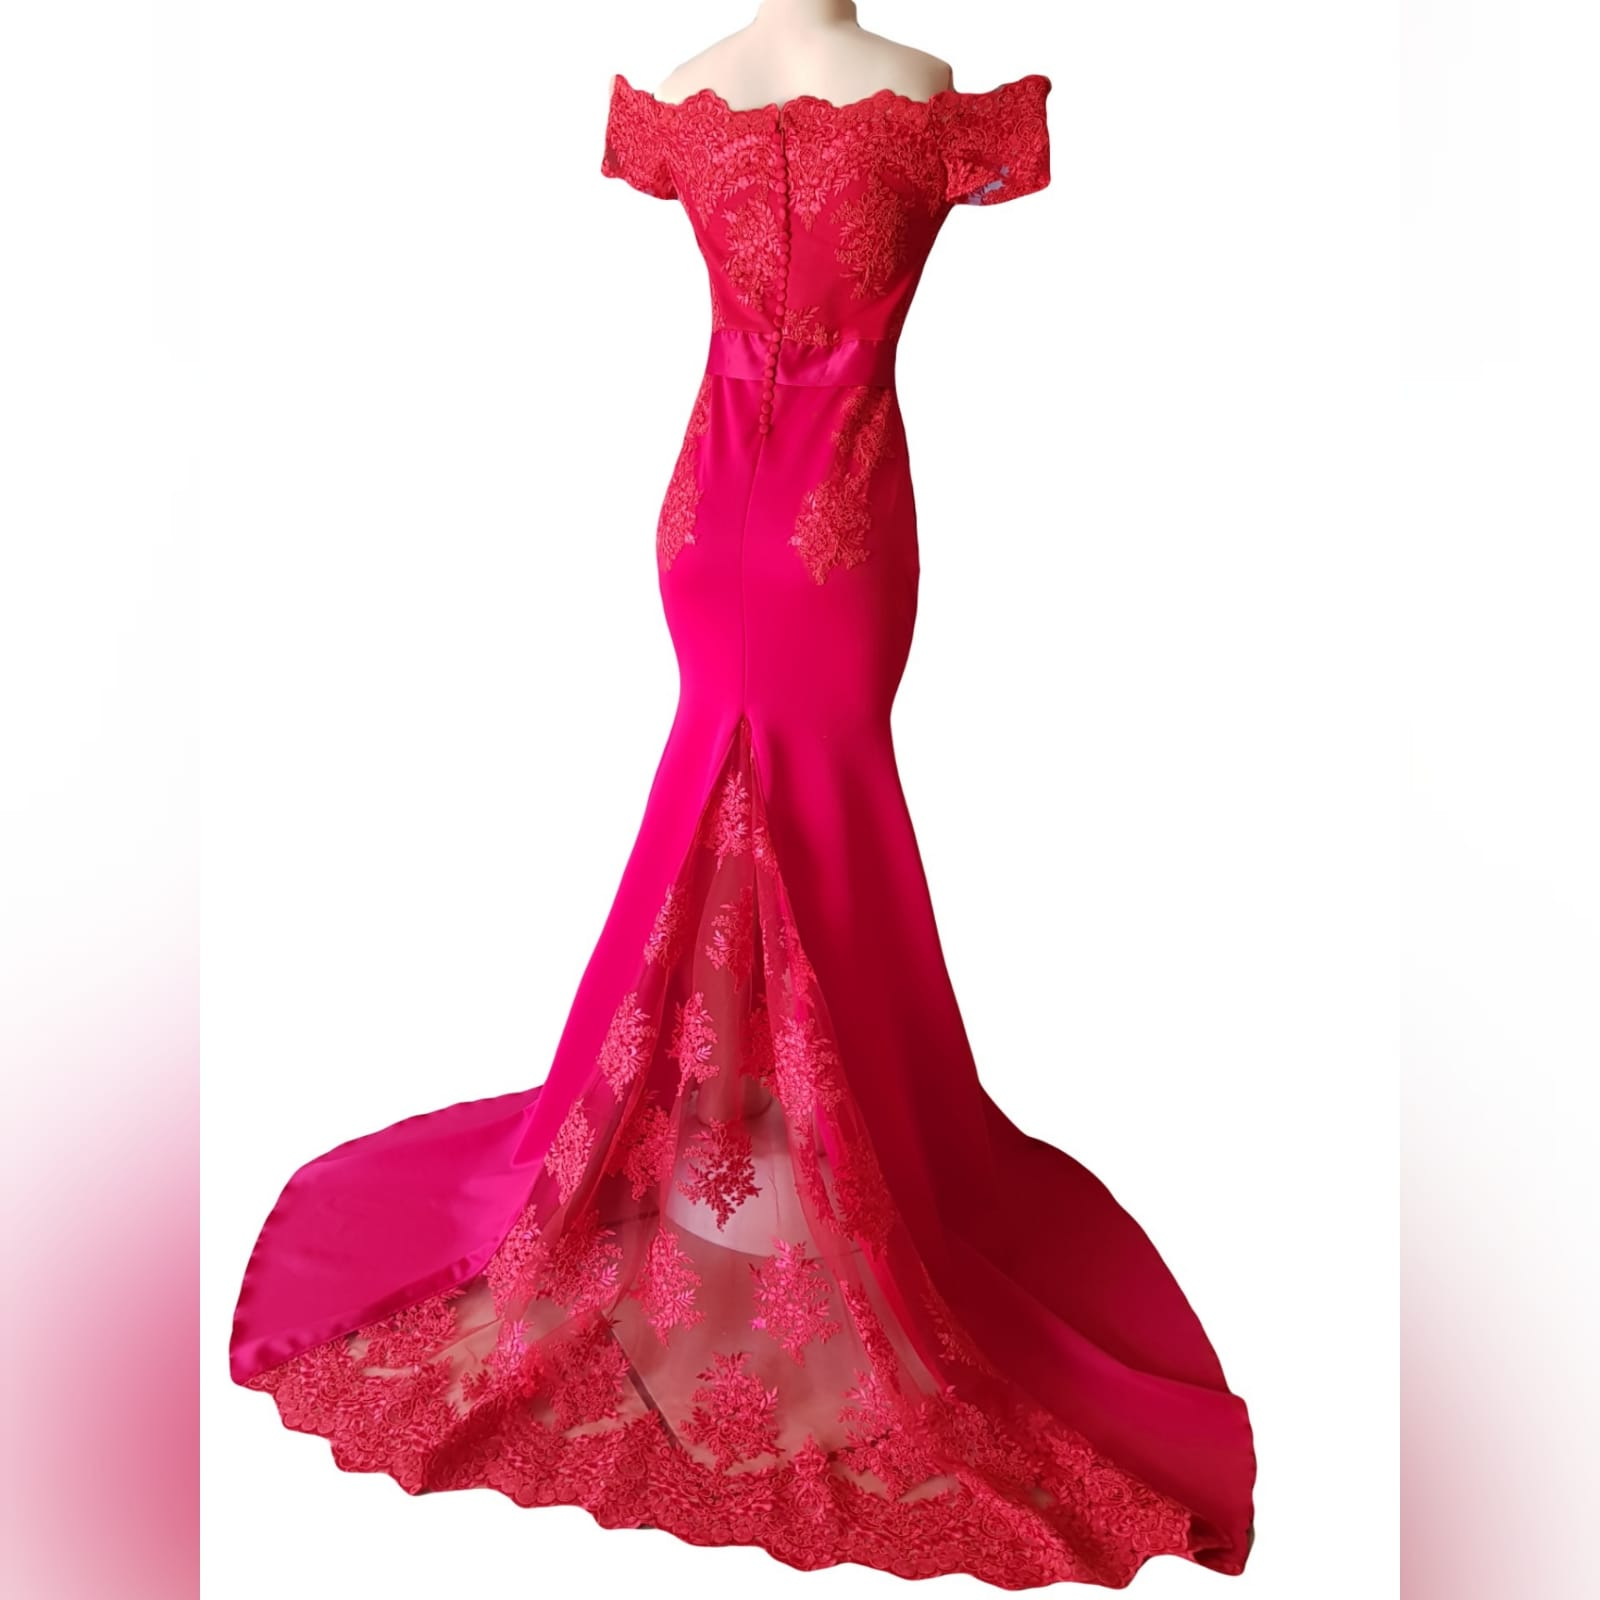 Gorgeous red soft mermaid dress 5 <blockquote><em>you don't have to play masculine to be a strong woman. – mary elizabeth winstead</em></blockquote> a gorgeous red soft mermaid dress created for my client's special event. A dress that turns heads, due to its amazing colour, elegance and sophistication. An off shoulder neckline with off shoulder cap sleeves in lace, with button detail running down the back. A satin belt accentuates the waistline. A wide sheer lace train to add a sensual and dramatic look to the dress.